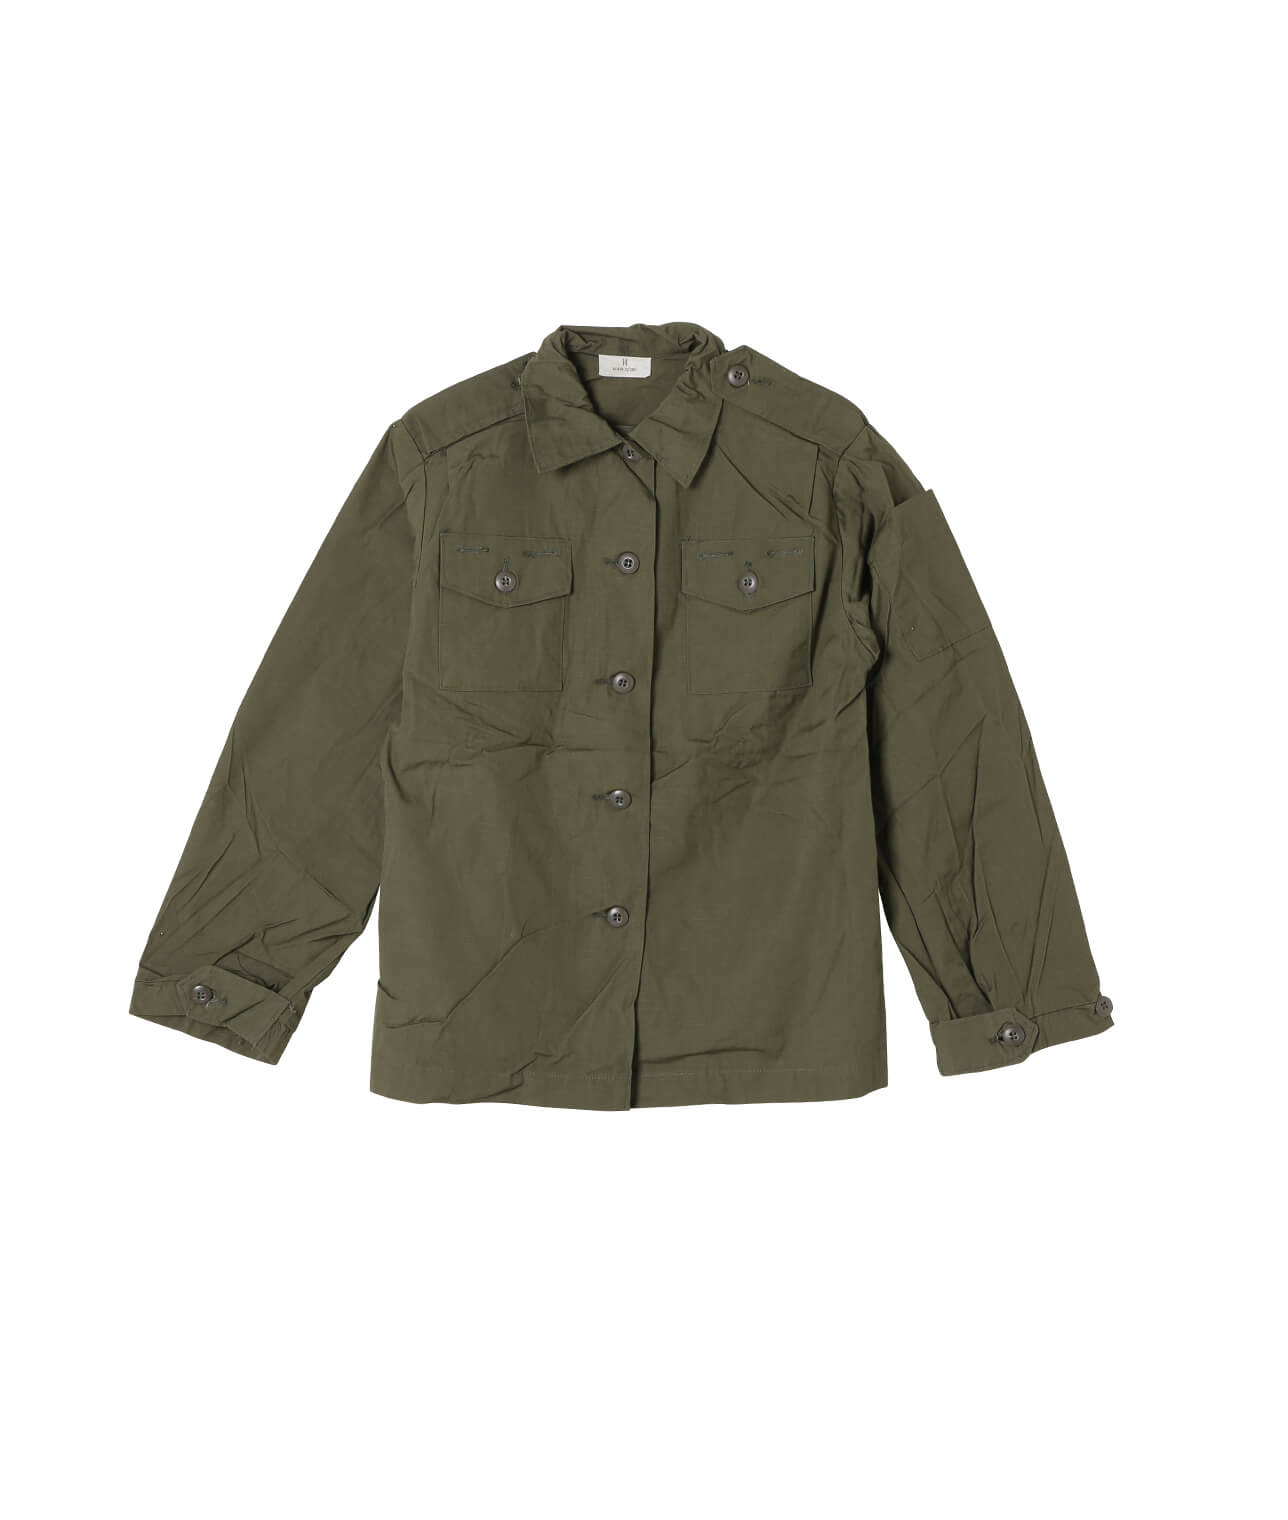 USED/US MILITARY W's RIPS TOP SHIRT DEAD STOCK 詳細画像 OLIVE 1